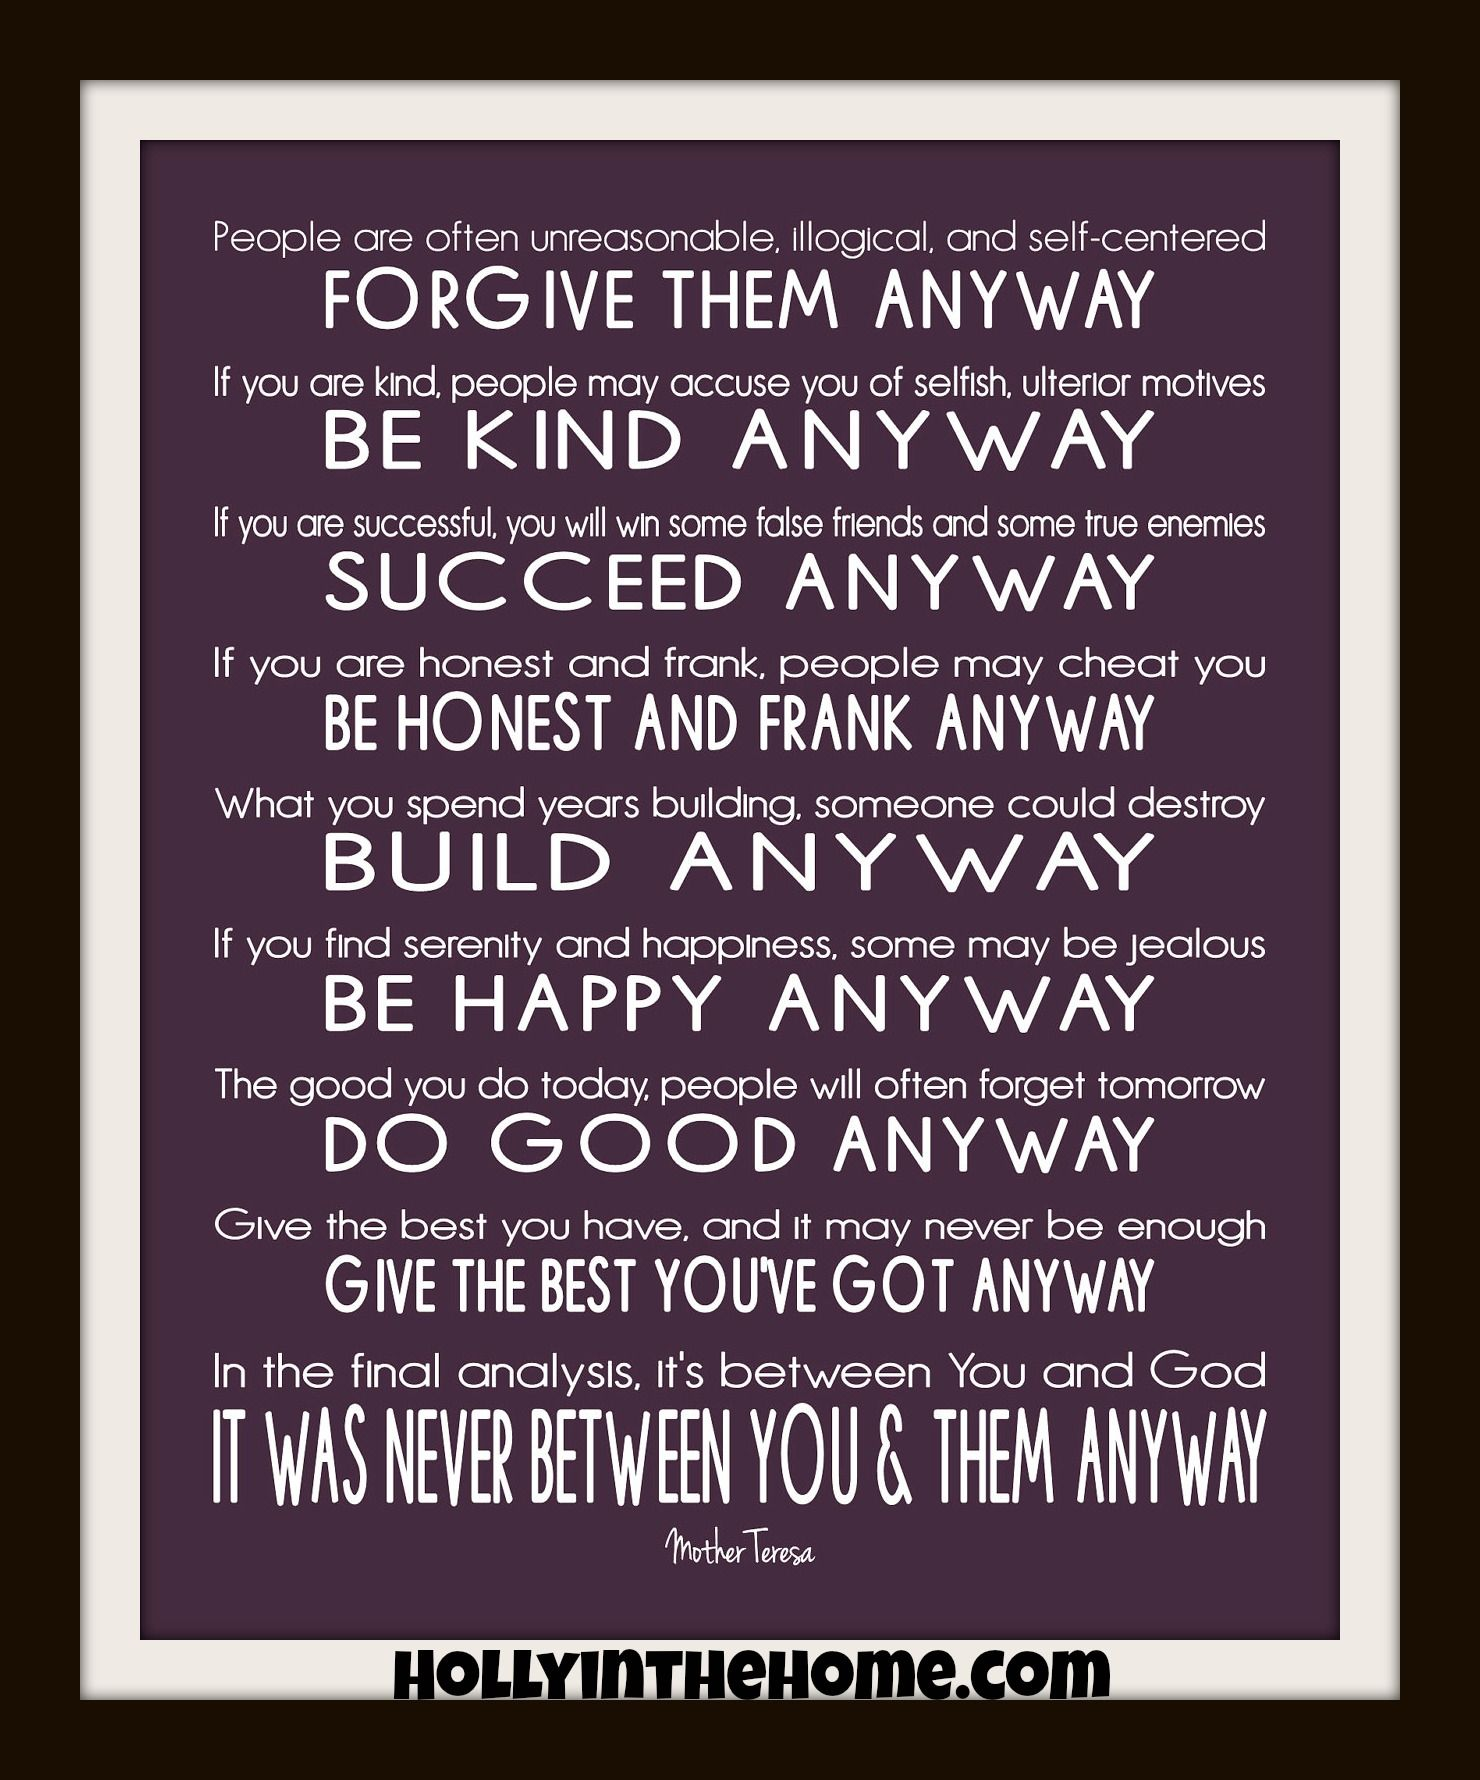 Do It Antway Mother Teresa Mother Teresa Quotes Inspirational Quotes Quotes